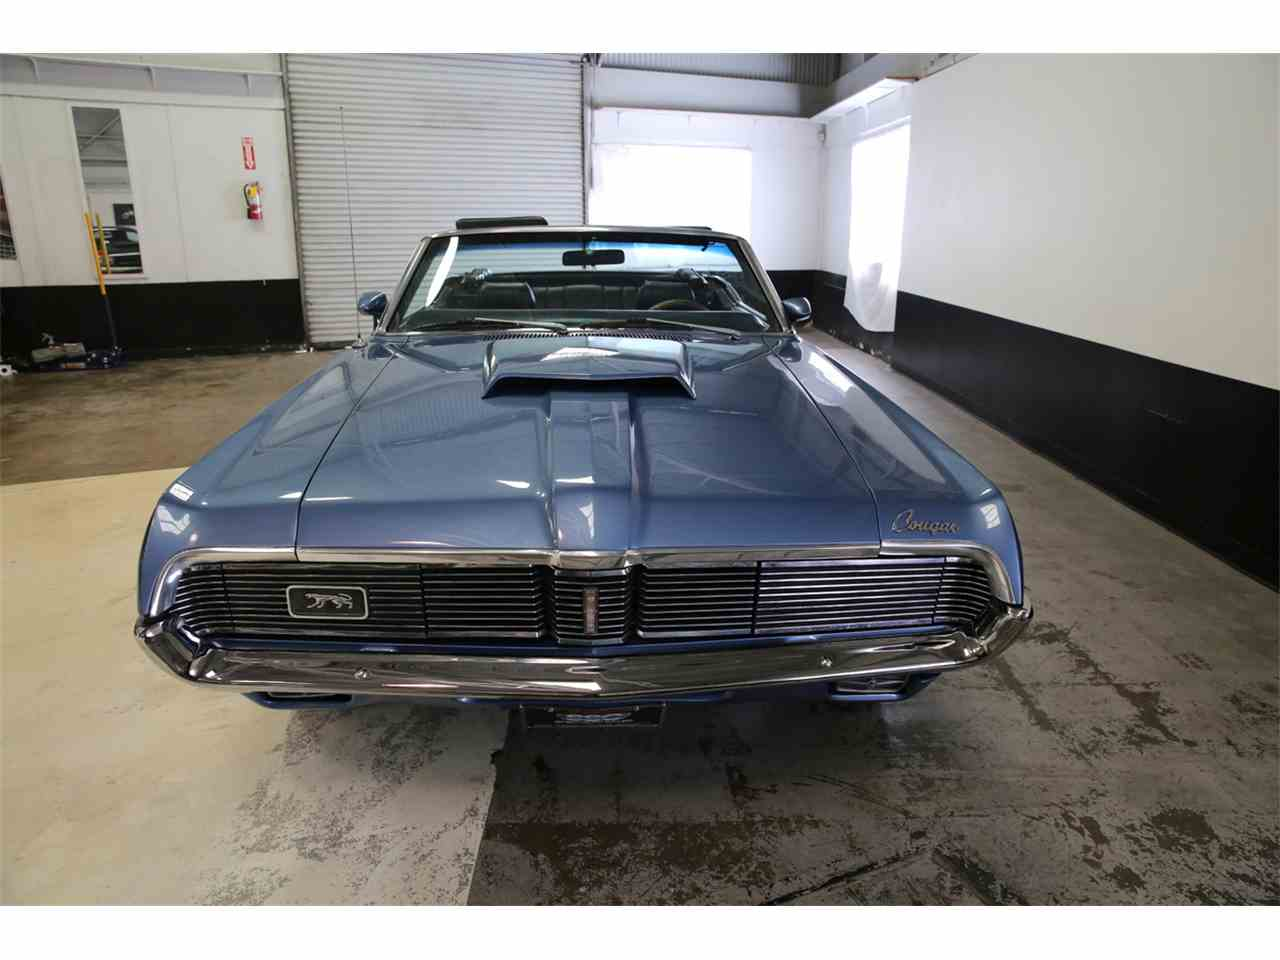 Large Picture of '69 Mercury Cougar located in Fairfield California - $26,000.00 - IEVB